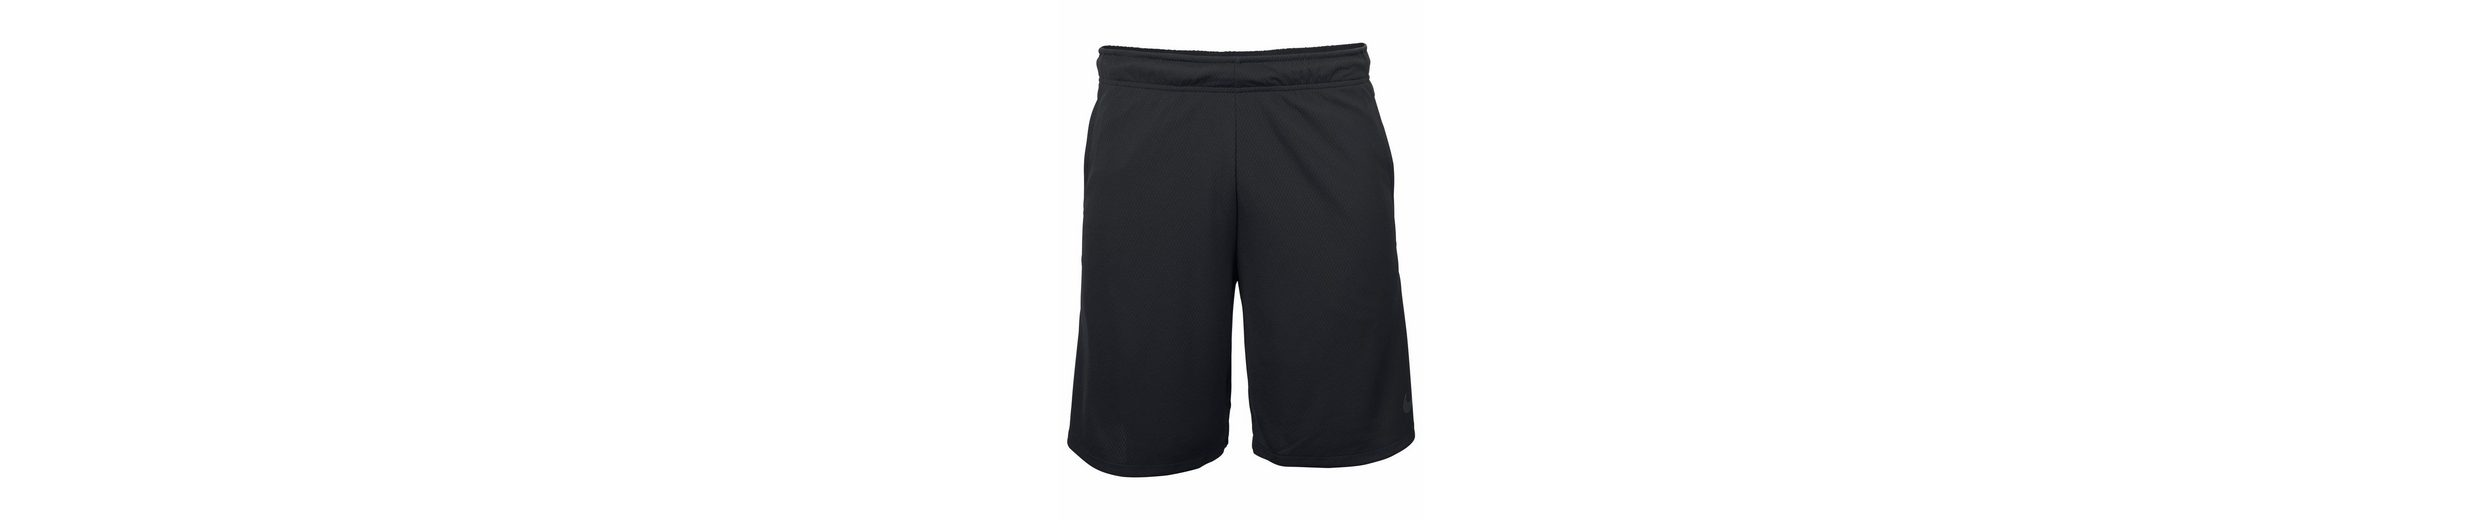 Nike DRY Funktionsshorts Nike 0 Funktionsshorts 4 SHORT dtPqEw